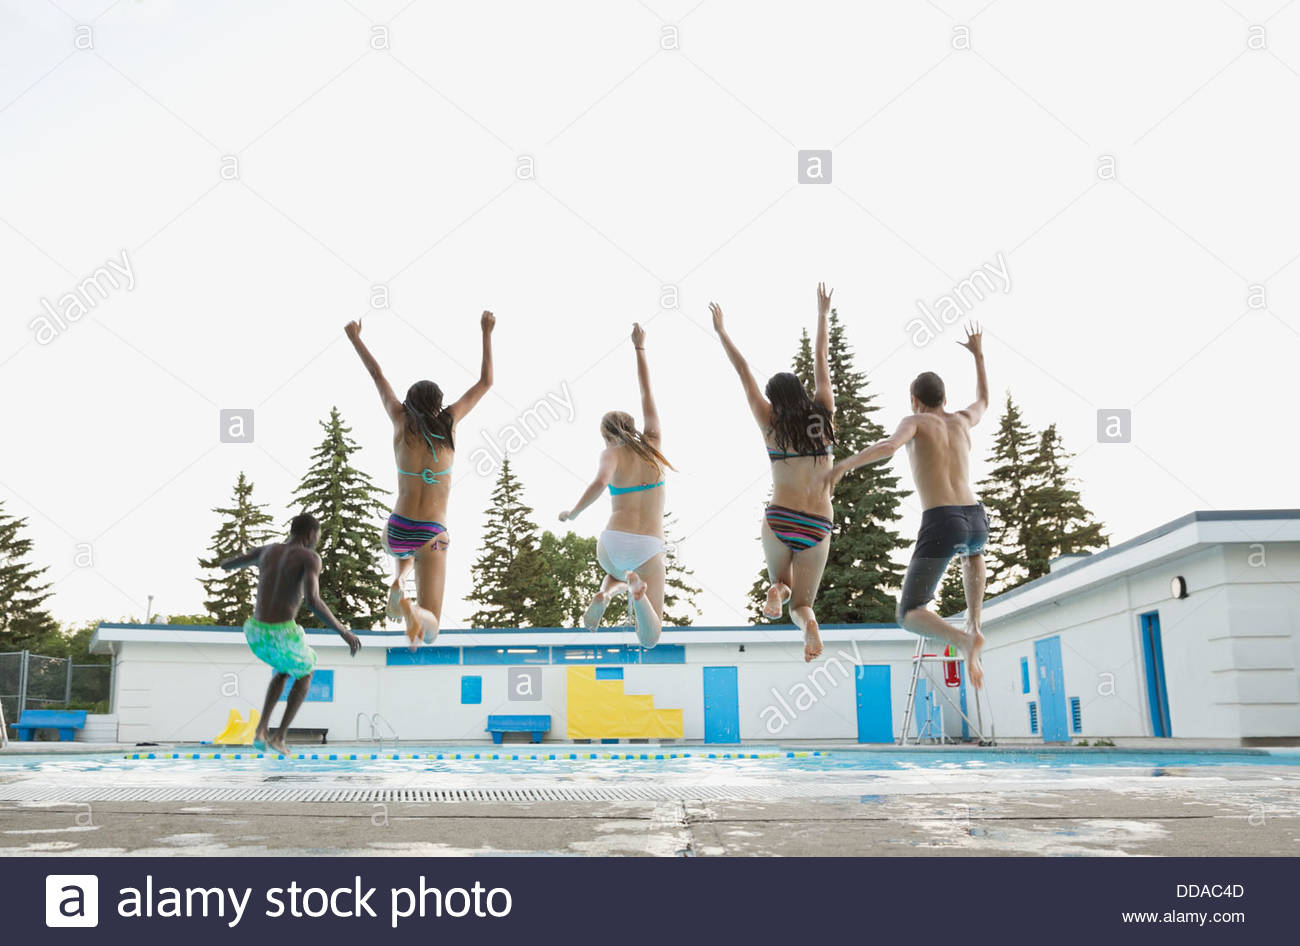 Group of teenagers jumping into swimming pool - Stock Image